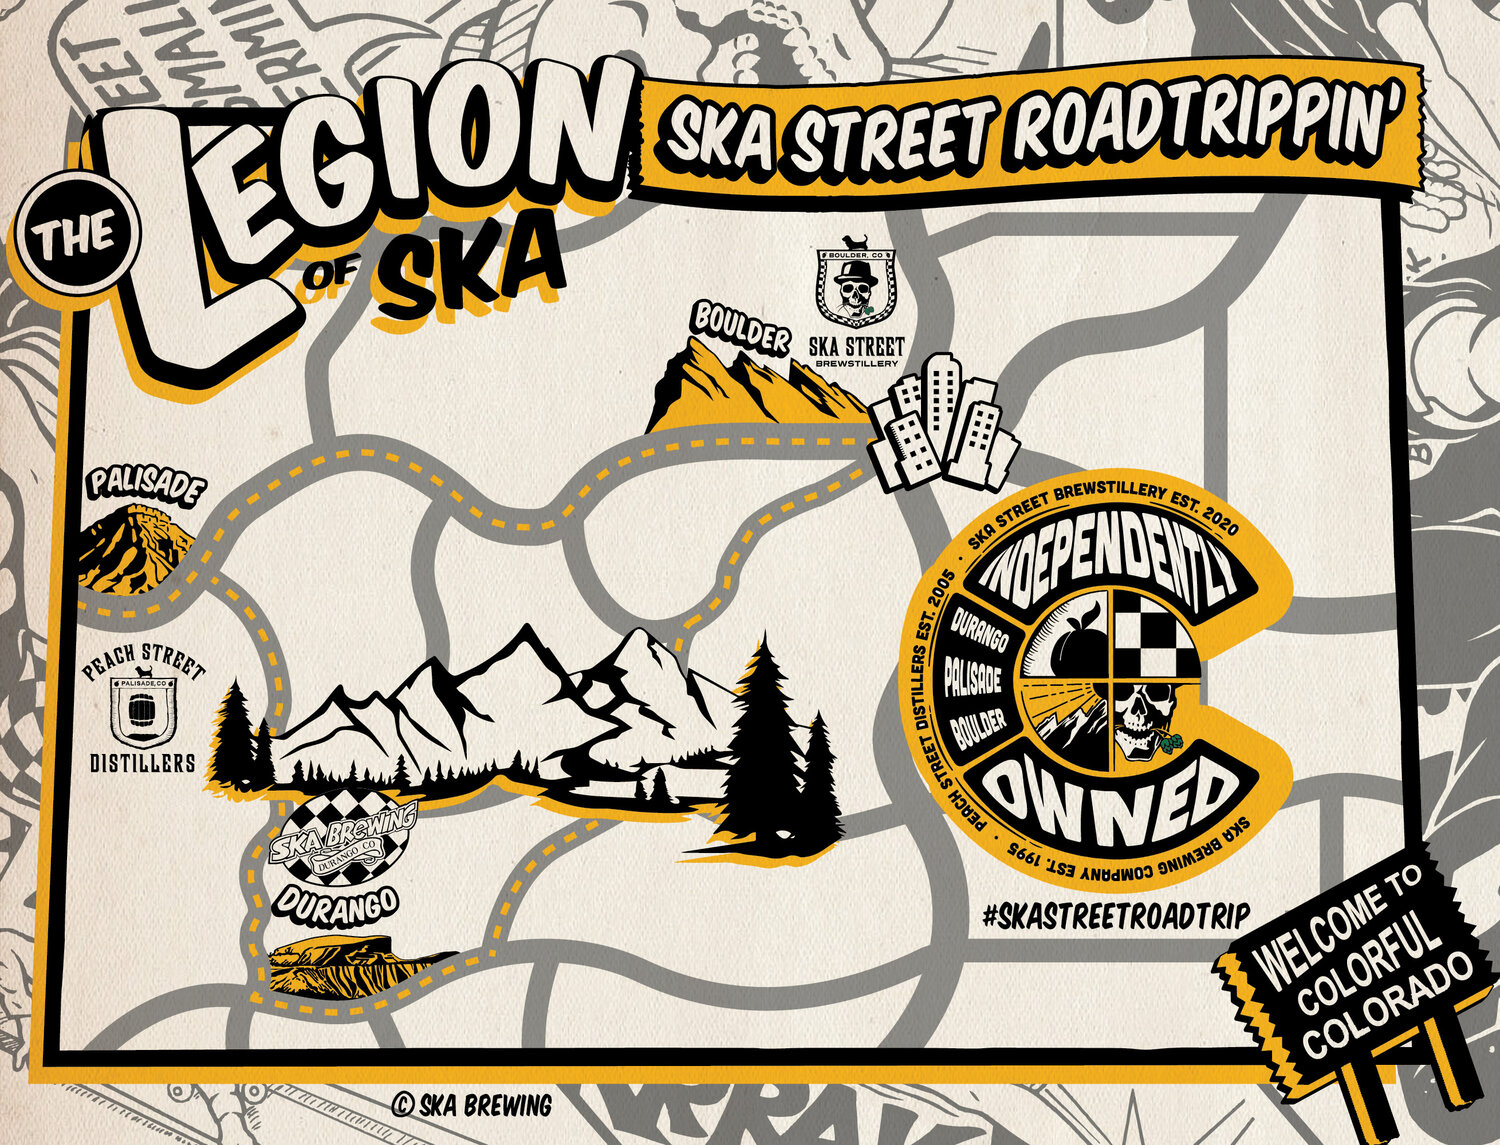 The Legion Of Ska Kicks Off The Ultimate Colorado Road Trip On National Road Trip Day